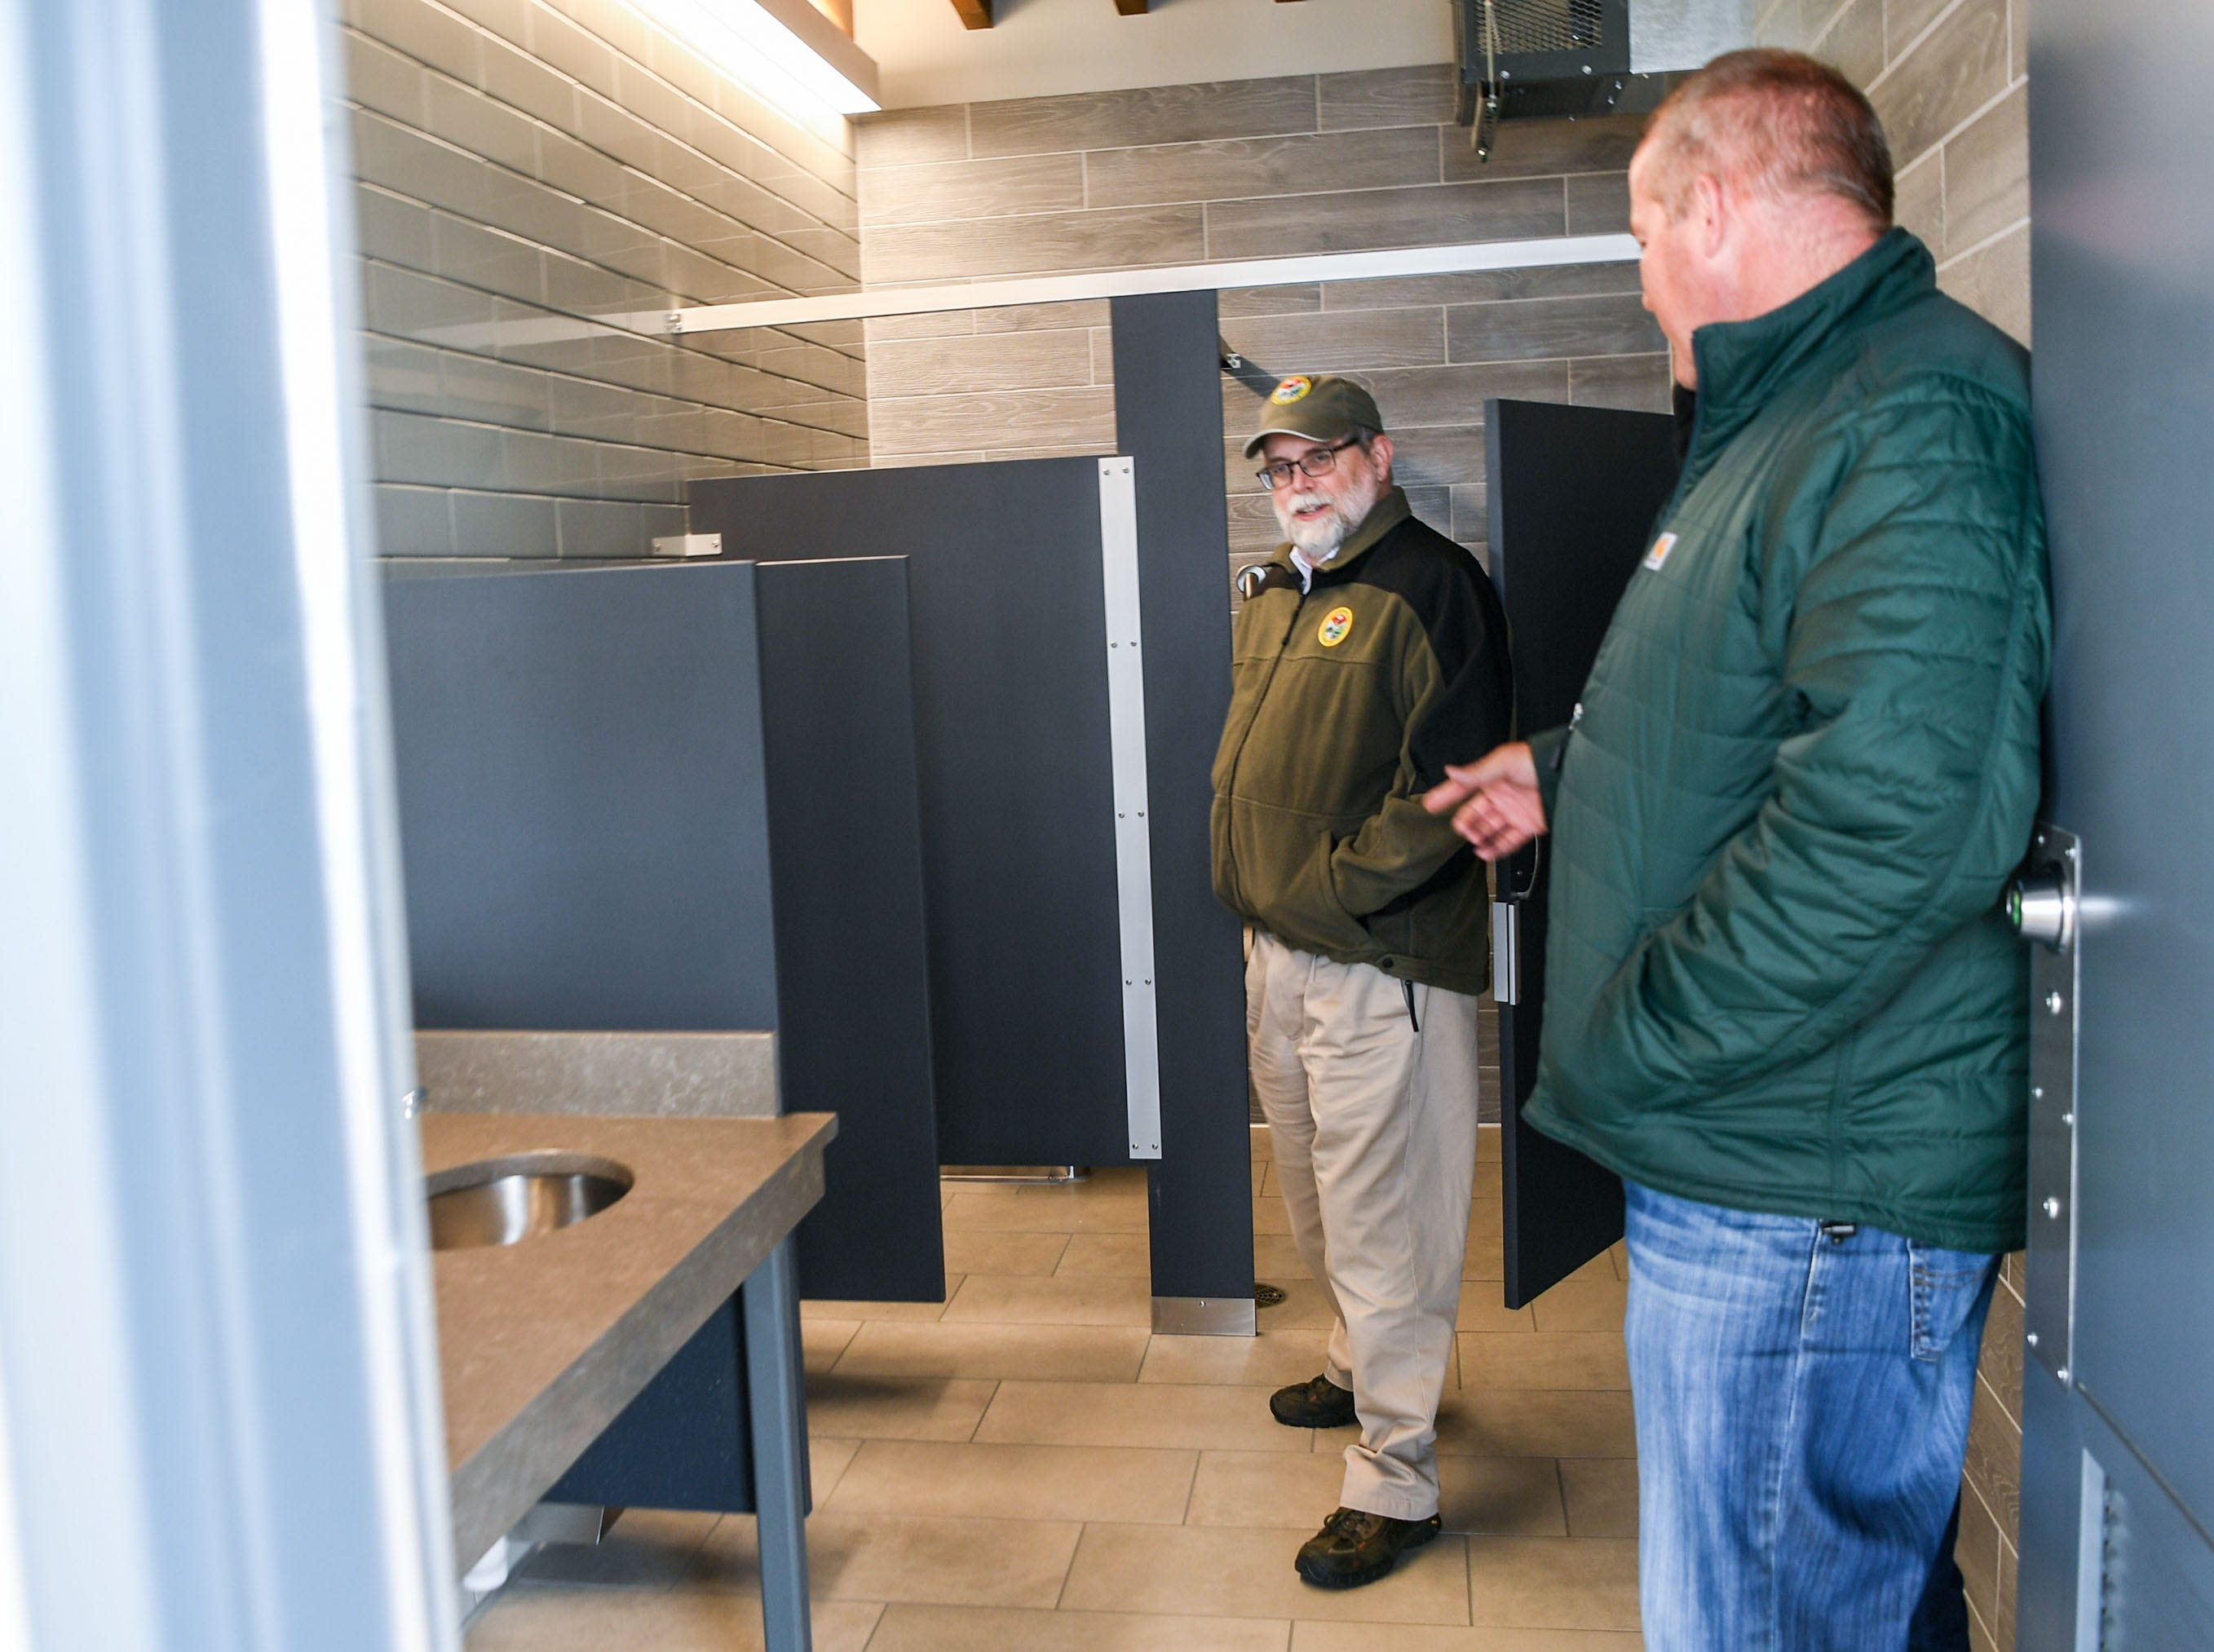 Ross Self, left, of South Carolin Department of Natural Resources, and Matt Schell, right, Anderson County Parks Department Manager, look at the newly opened restrooms at the Green Pond Landing & Event Center in Anderson County Tuesday.